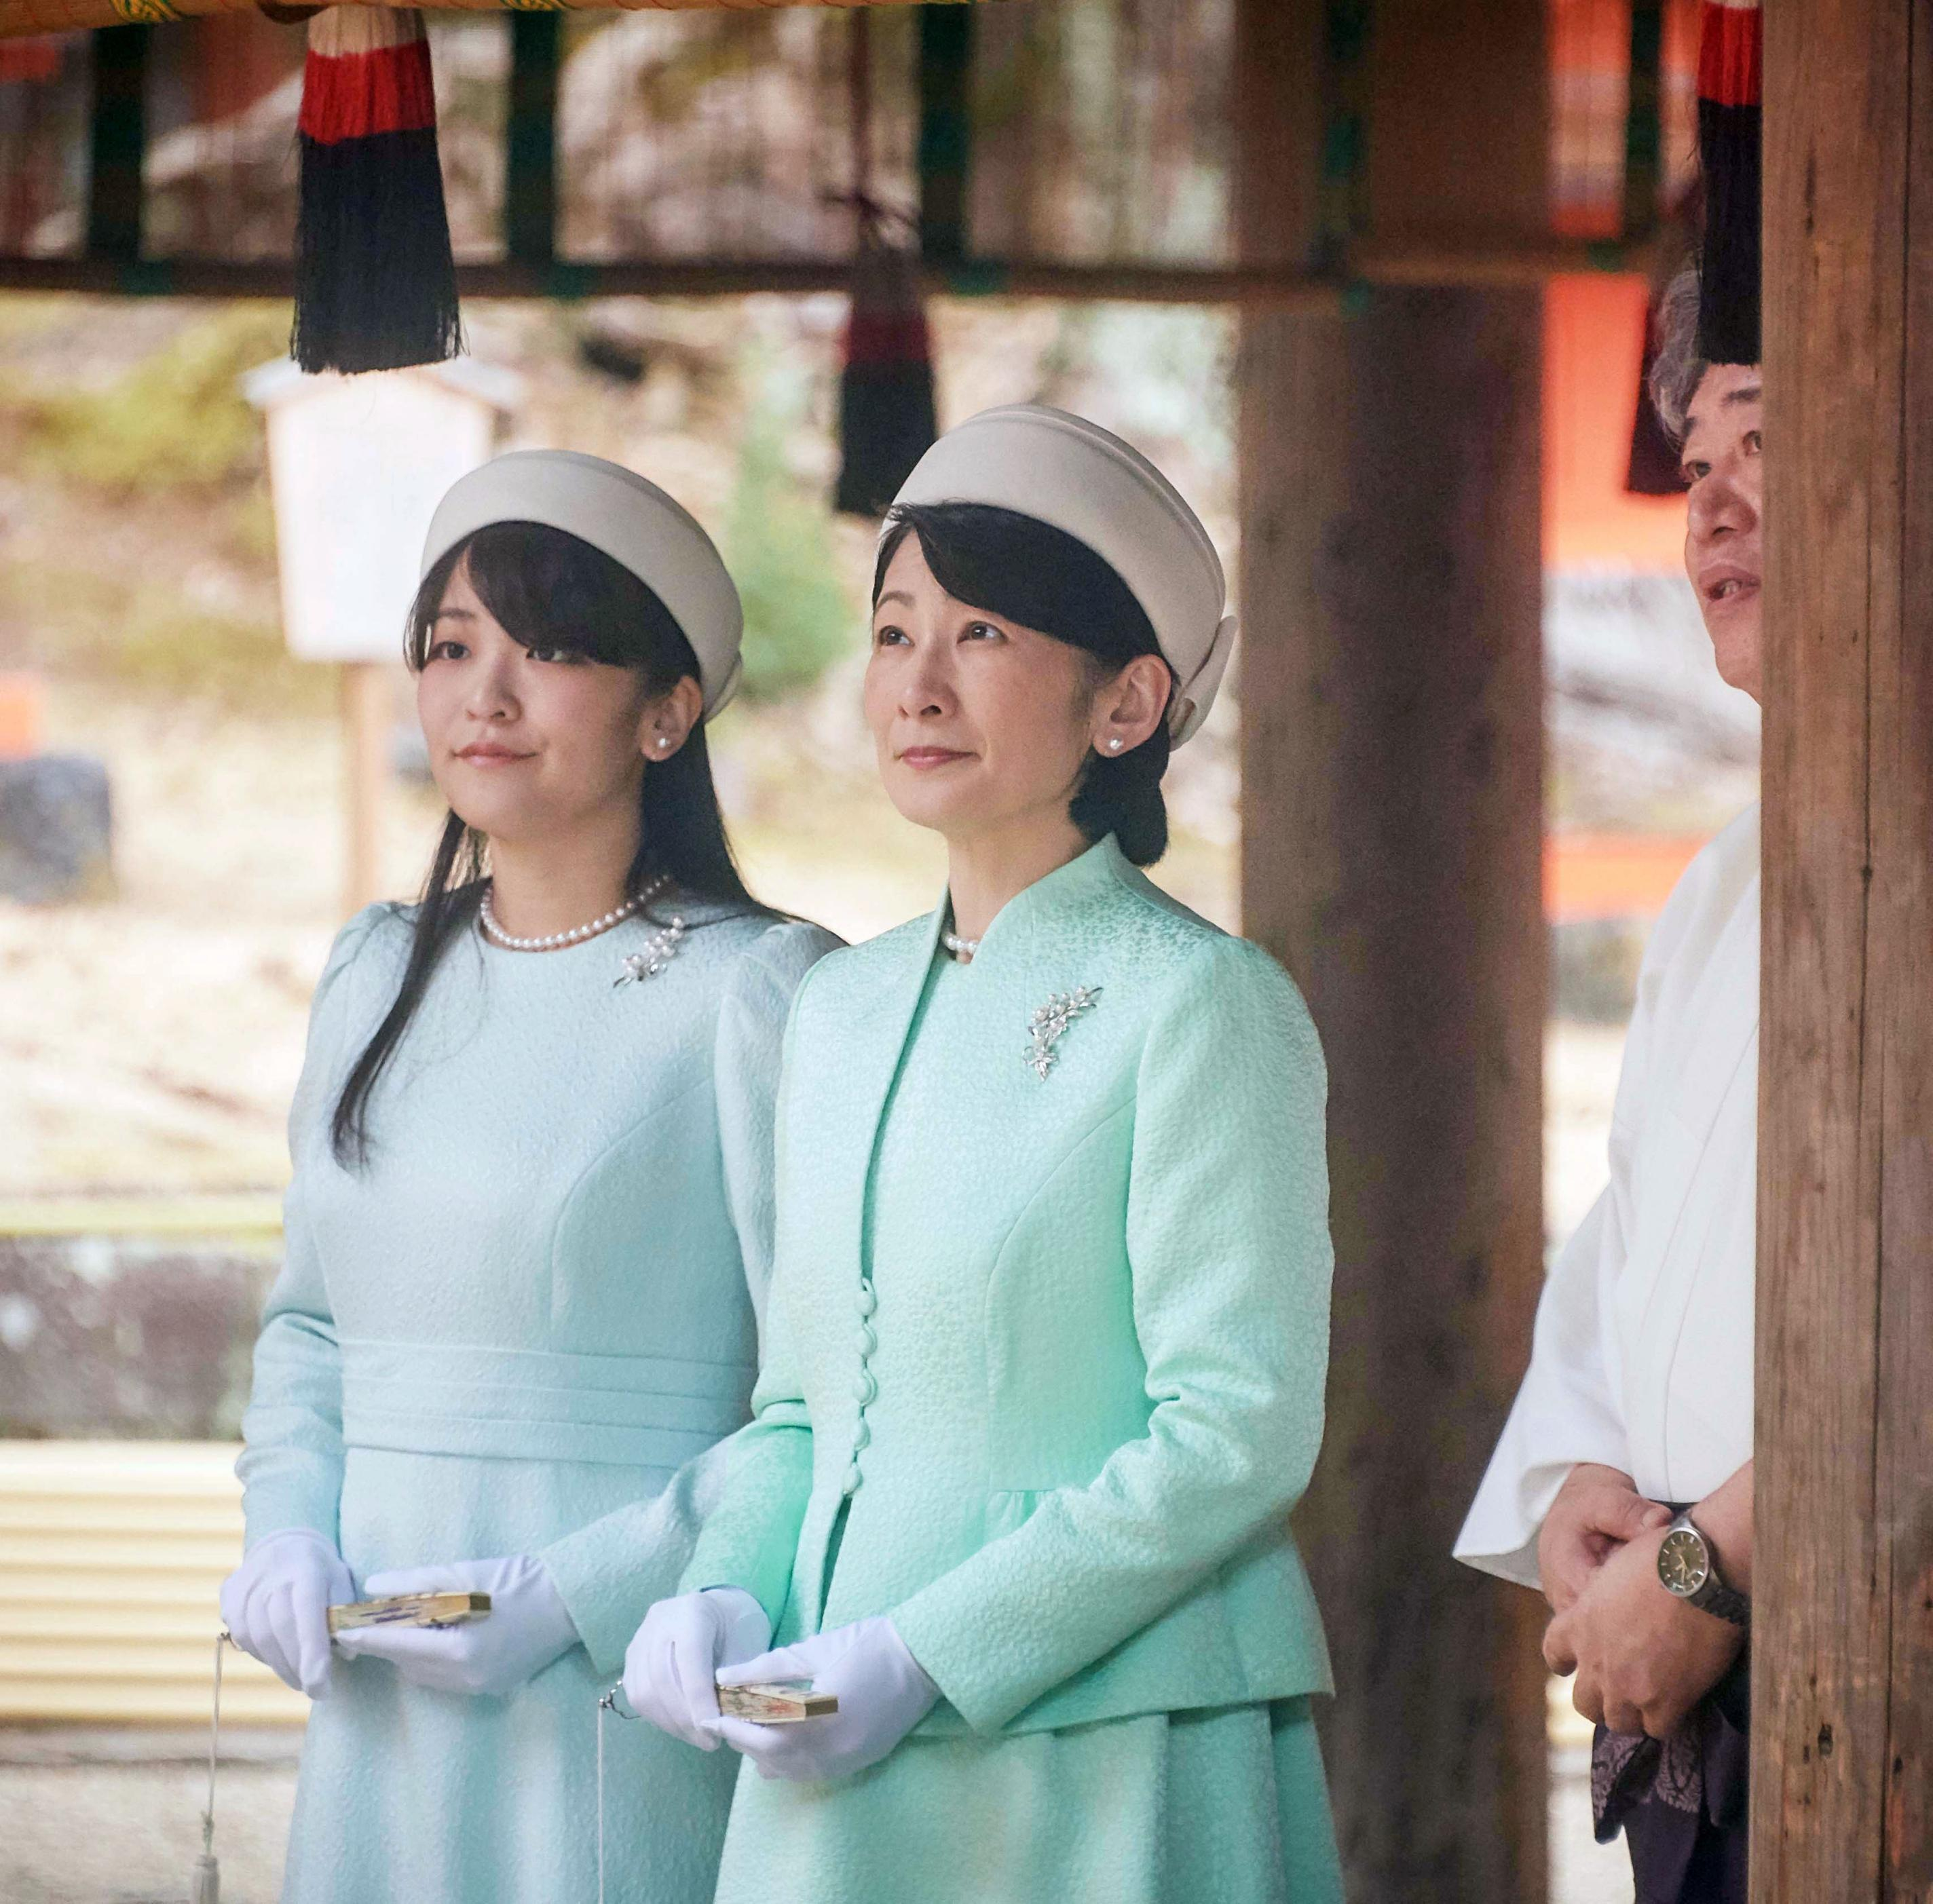 Princess Mako to visit Bhutan in June